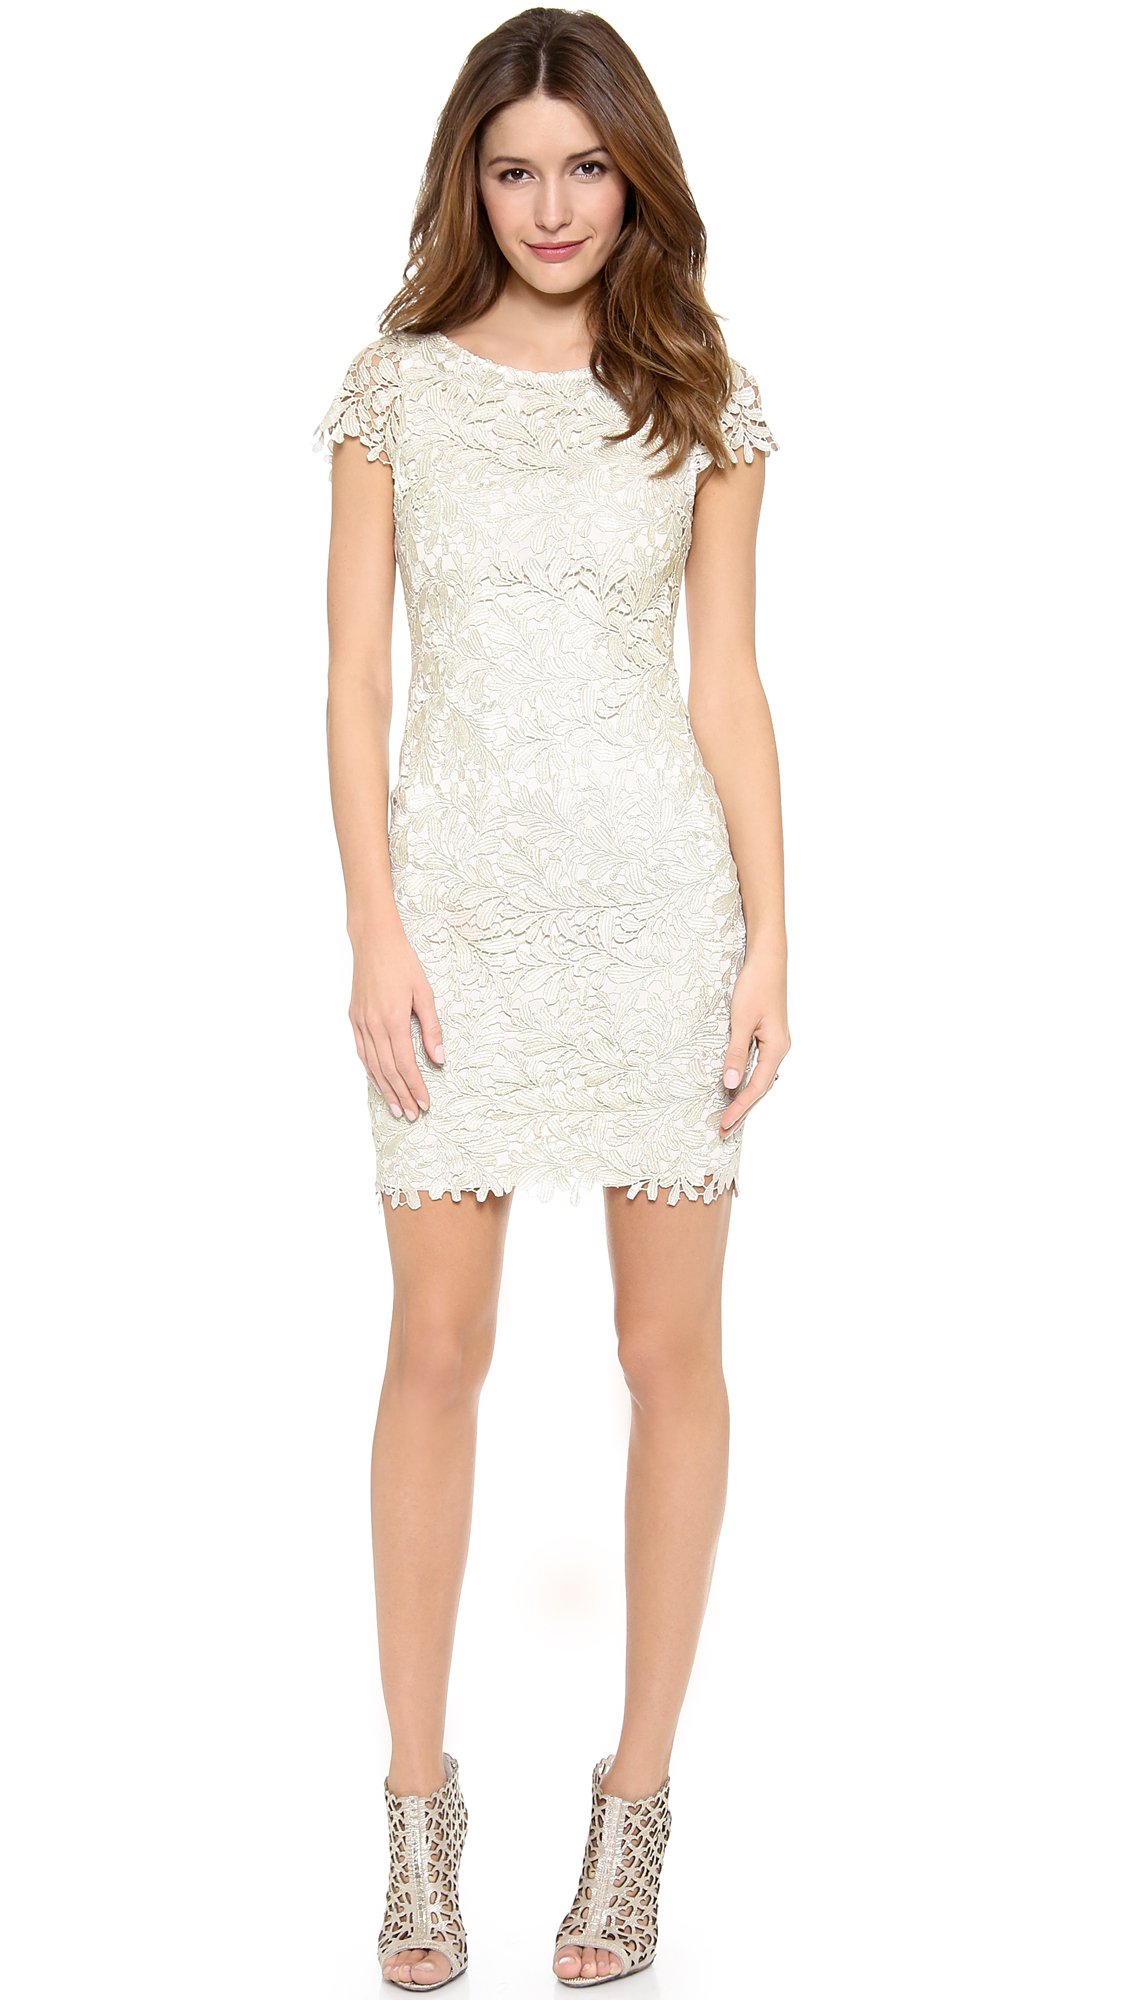 alice   olivia Clover Lace Fitted Midi Dress - SHOPBOP